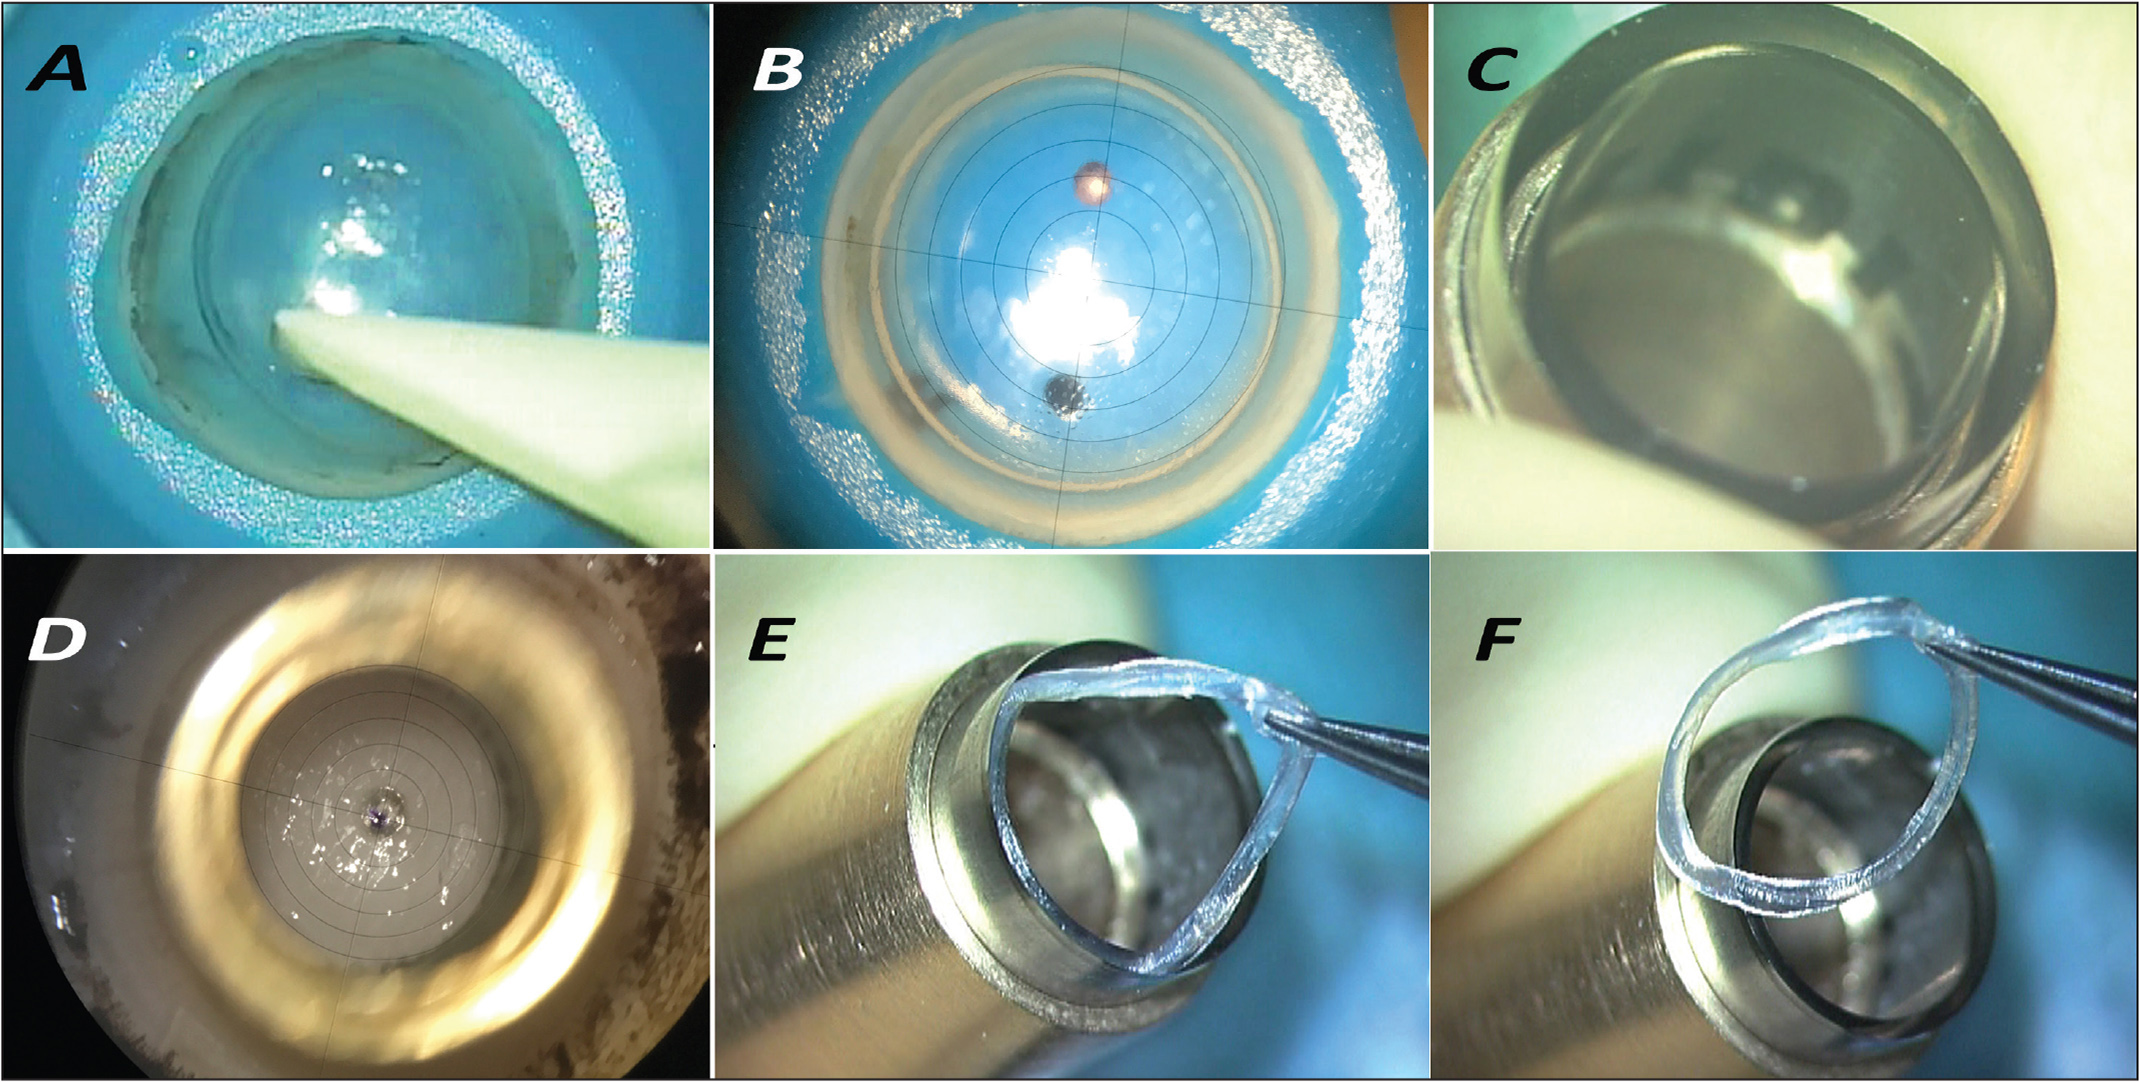 Corneal allogenic intrastromal ring segments (CAIRS) preparation. (A) The donor epithelium is completely removed from limbus to limbus using dry sponges. (B) The corneal center is marked using the reticule of the VisuMax 500-kHz femtosecond laser platform (Carl Zeiss Meditec, Jena, Germany). (C) Specially designed double-bladed circular trephine (Jacob CAIRS trephine; Madhu Instruments, New Delhi, India). (D) After removing endothelium, the trephine is centered on the inked mark using the reticule. (E) Two concentric cuts are made on the donor corneal rim. (F) A circular corneal allogenic intrastromal ring segment is seen, which is then bisected into two.